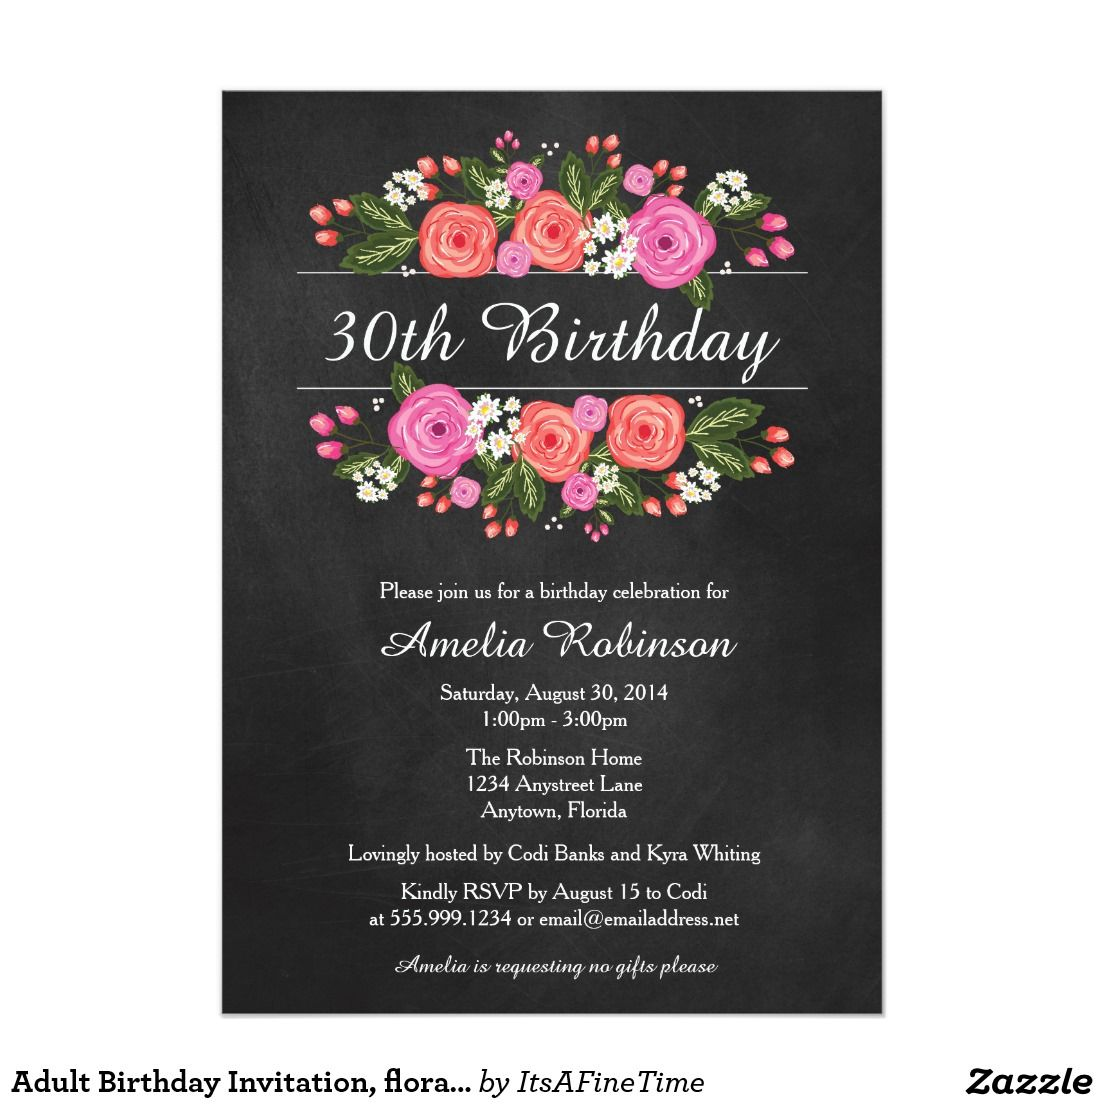 Adult Birthday Invitation, floral chalkboard style Card